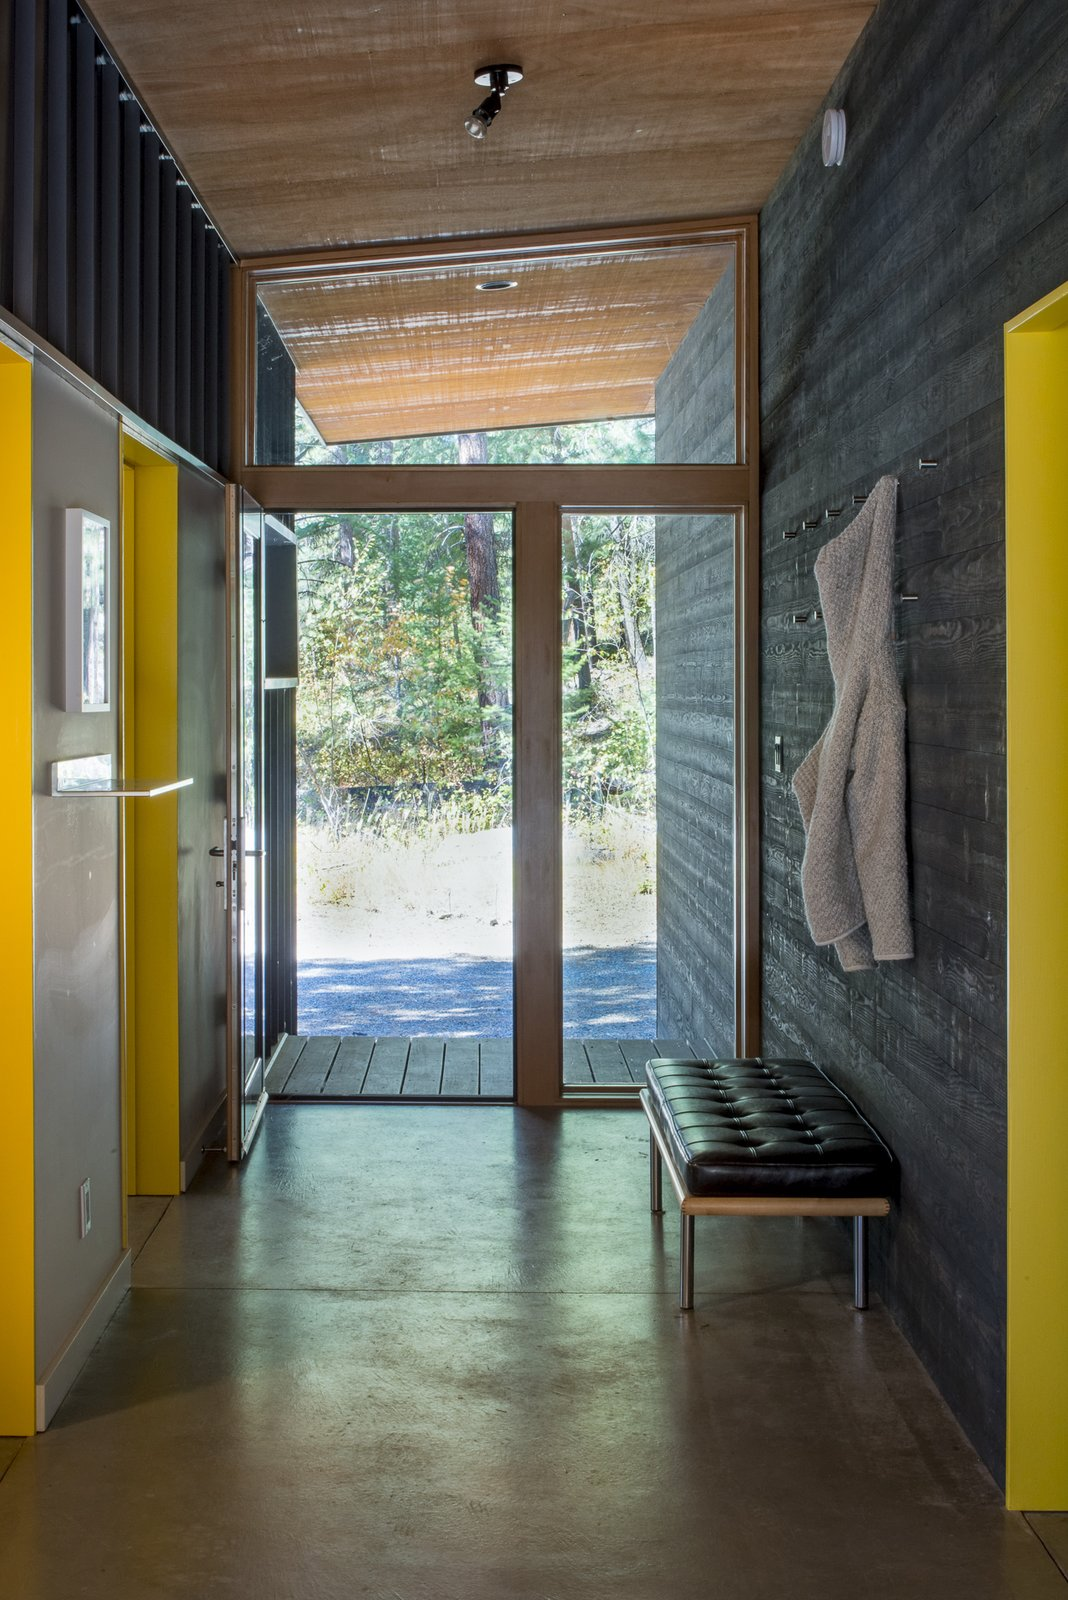 Hallway and Concrete Floor An entrance hallway is the first space you enter in a home, but it can also serve the very important function of acting as a drop-off station or mudroom for keys, shoes, and coats.  Lot 6 by Prentiss + Balance + Wickline Architects